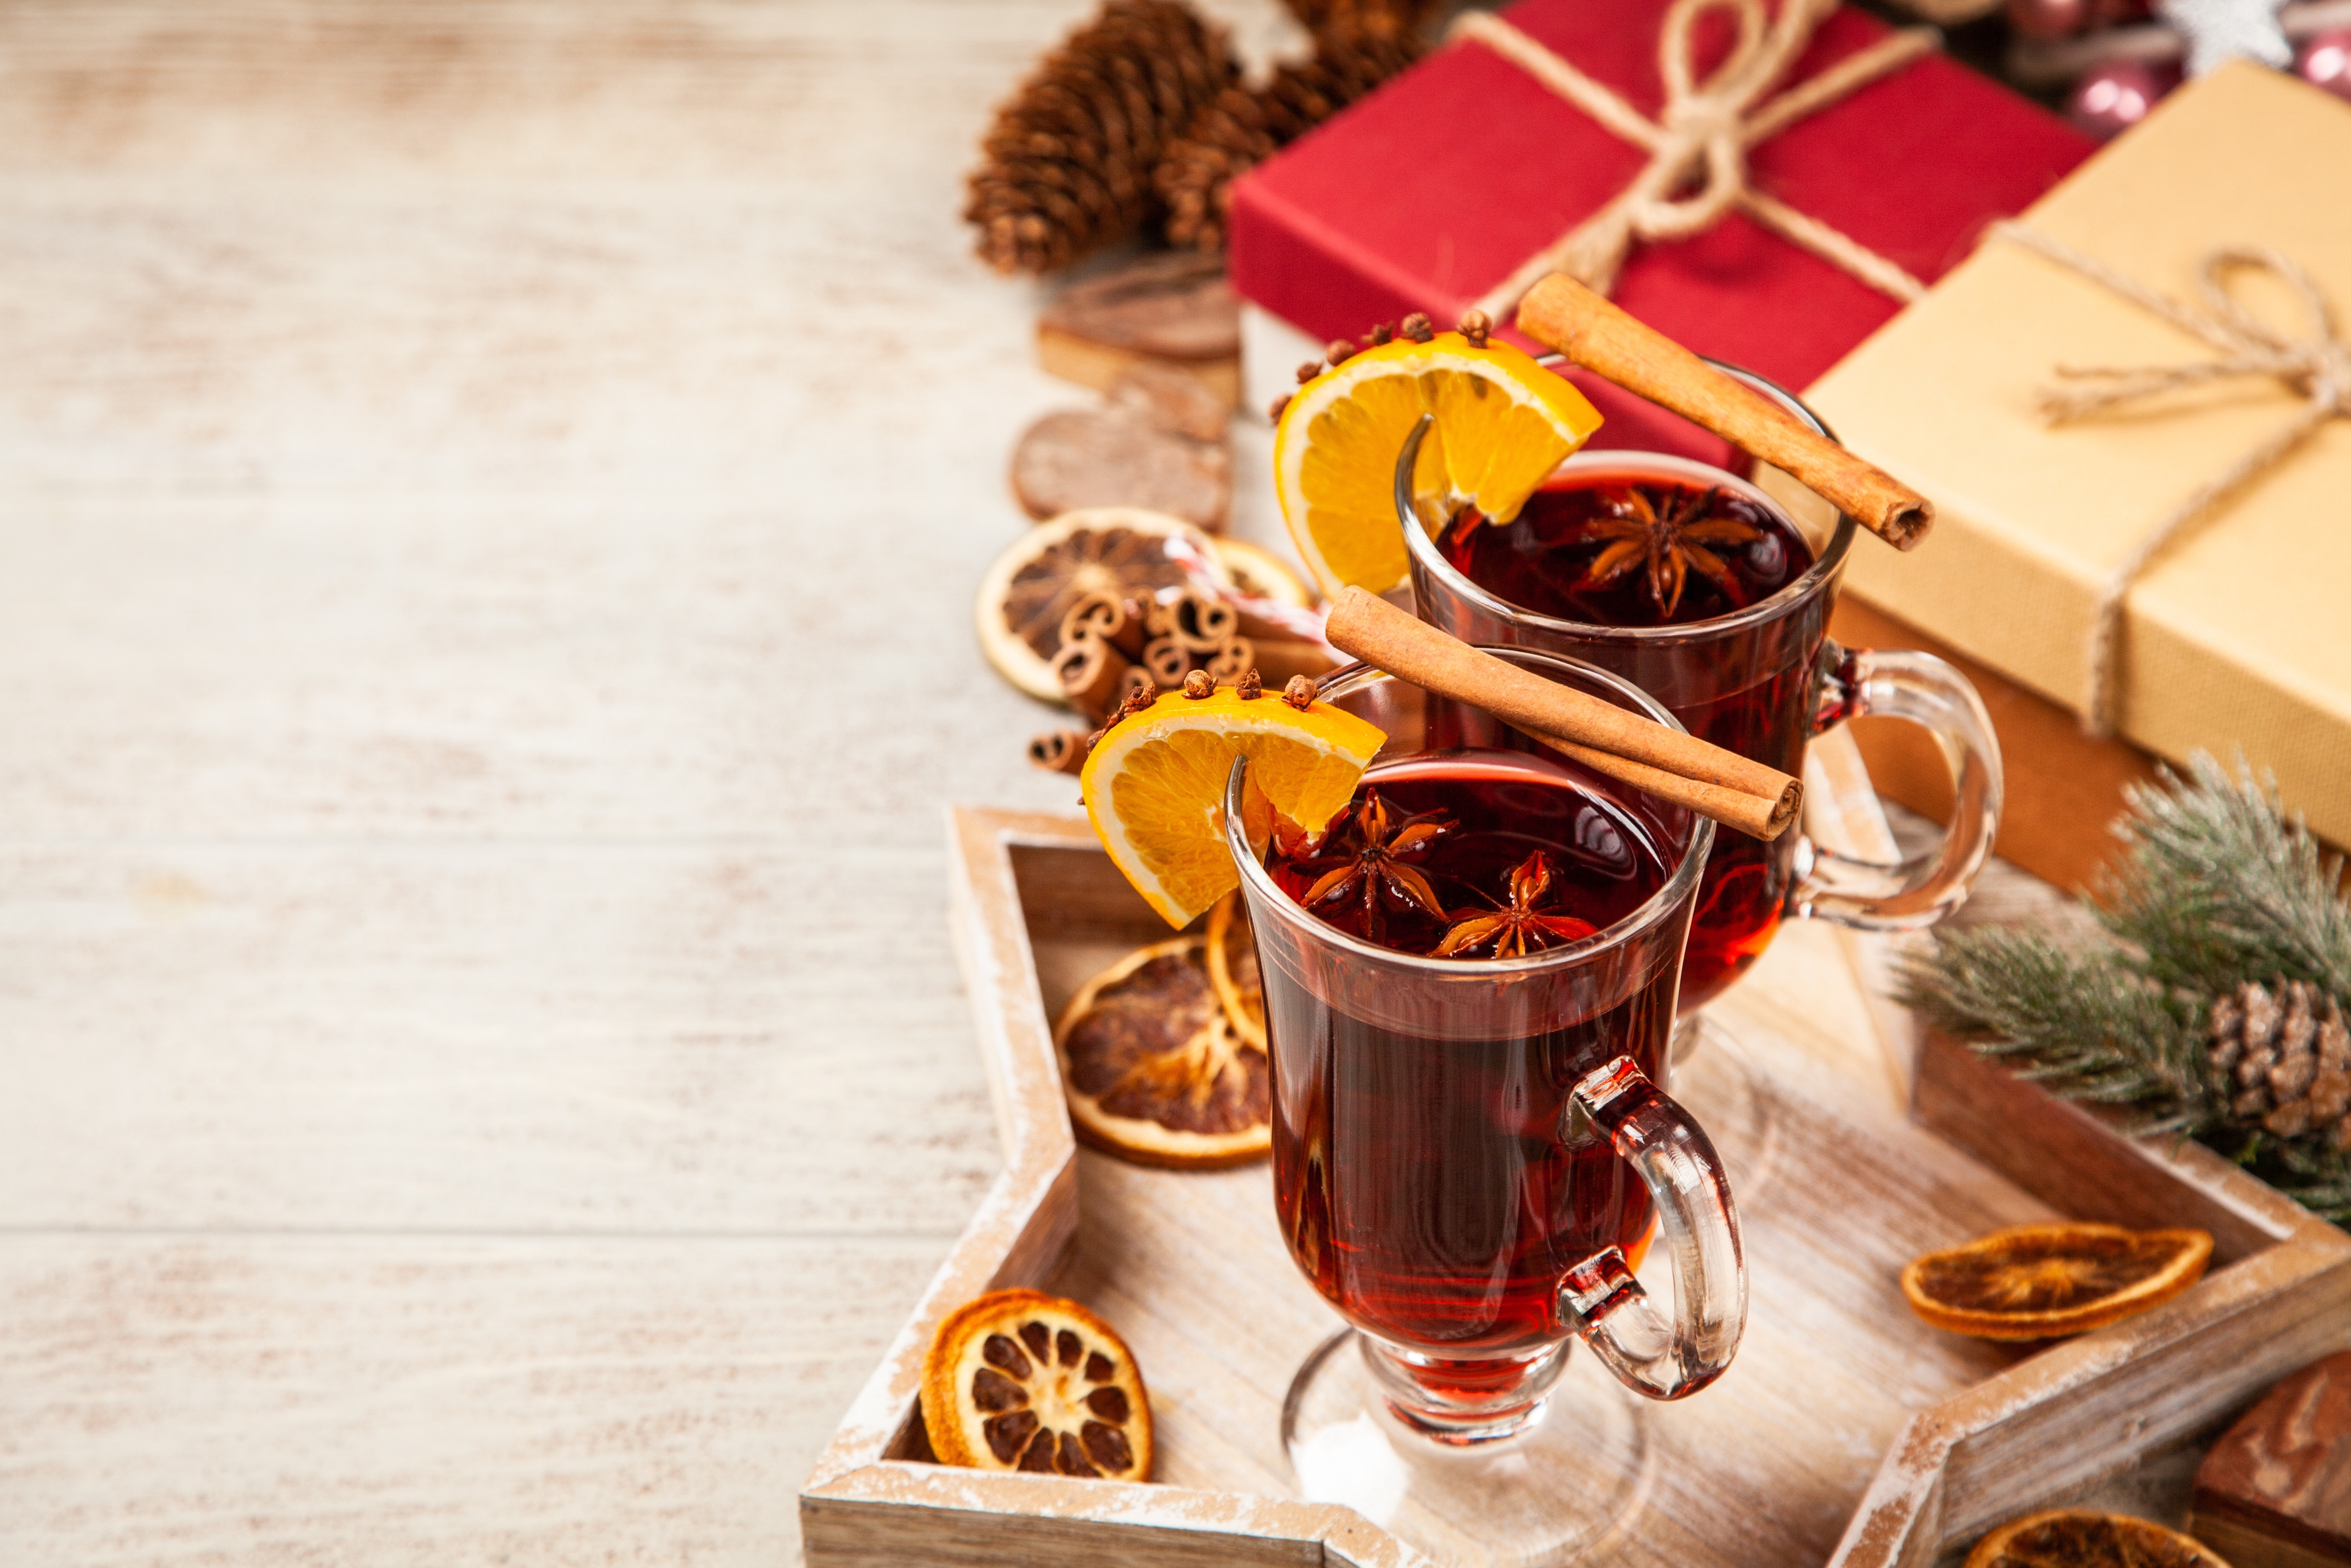 5 Holiday Drink Recipes To Whip Up In Your Kitchen